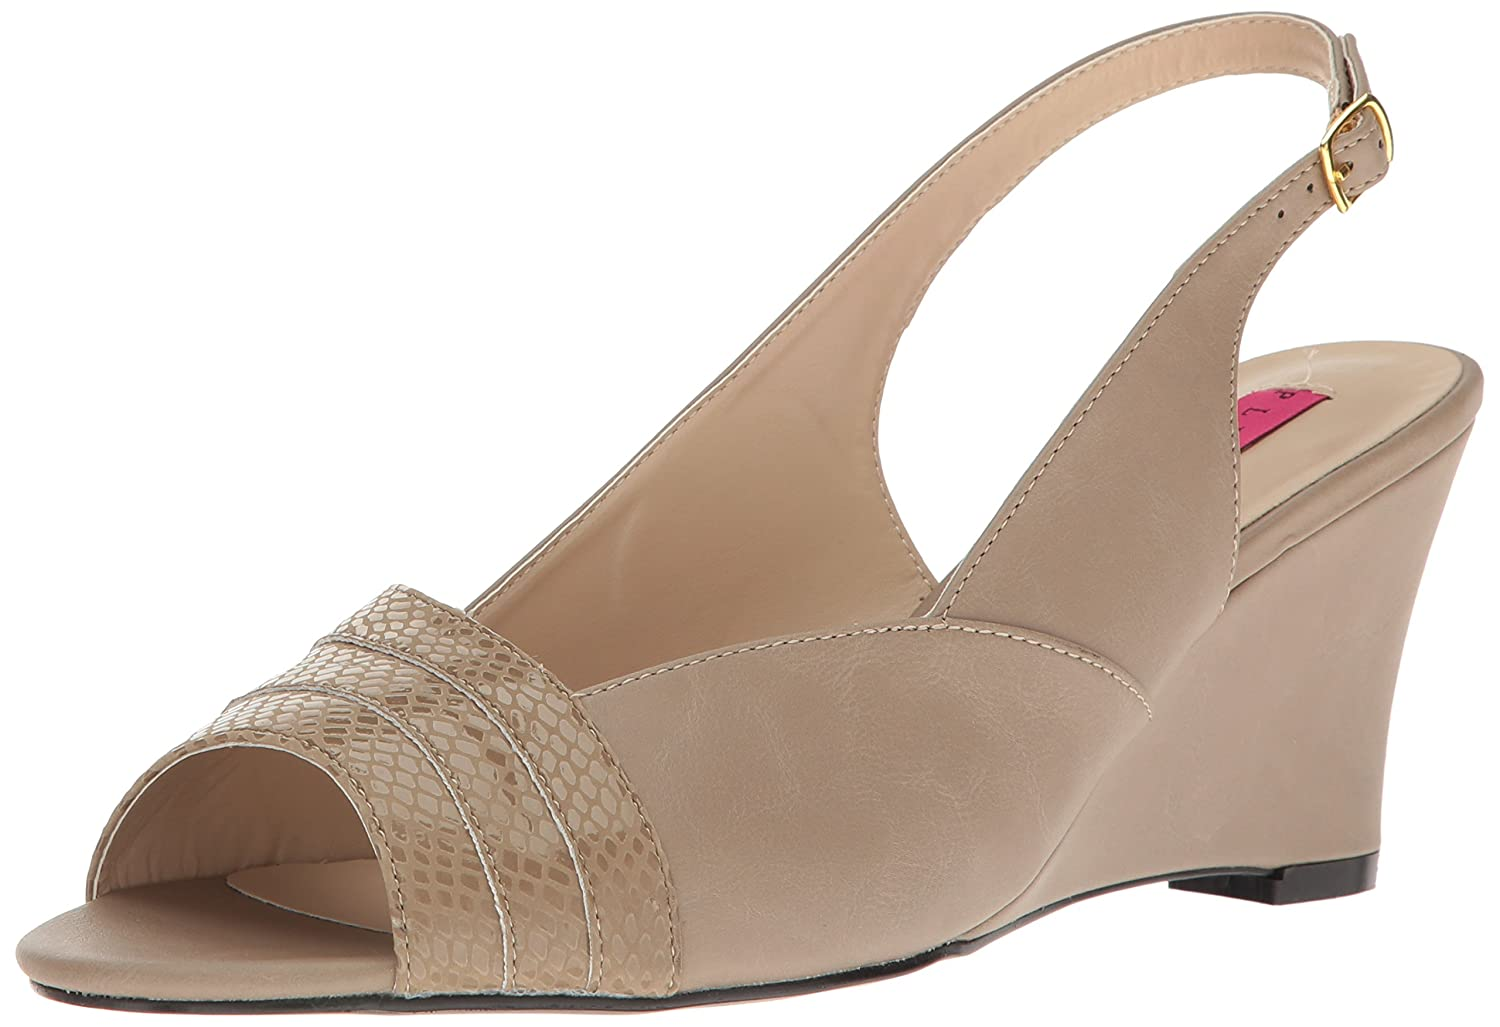 Pleaser Women's Kim01sp/Tppu Wedge Sandal B06XH3S7K5 16 B(M) US|Taupe Faux Leather